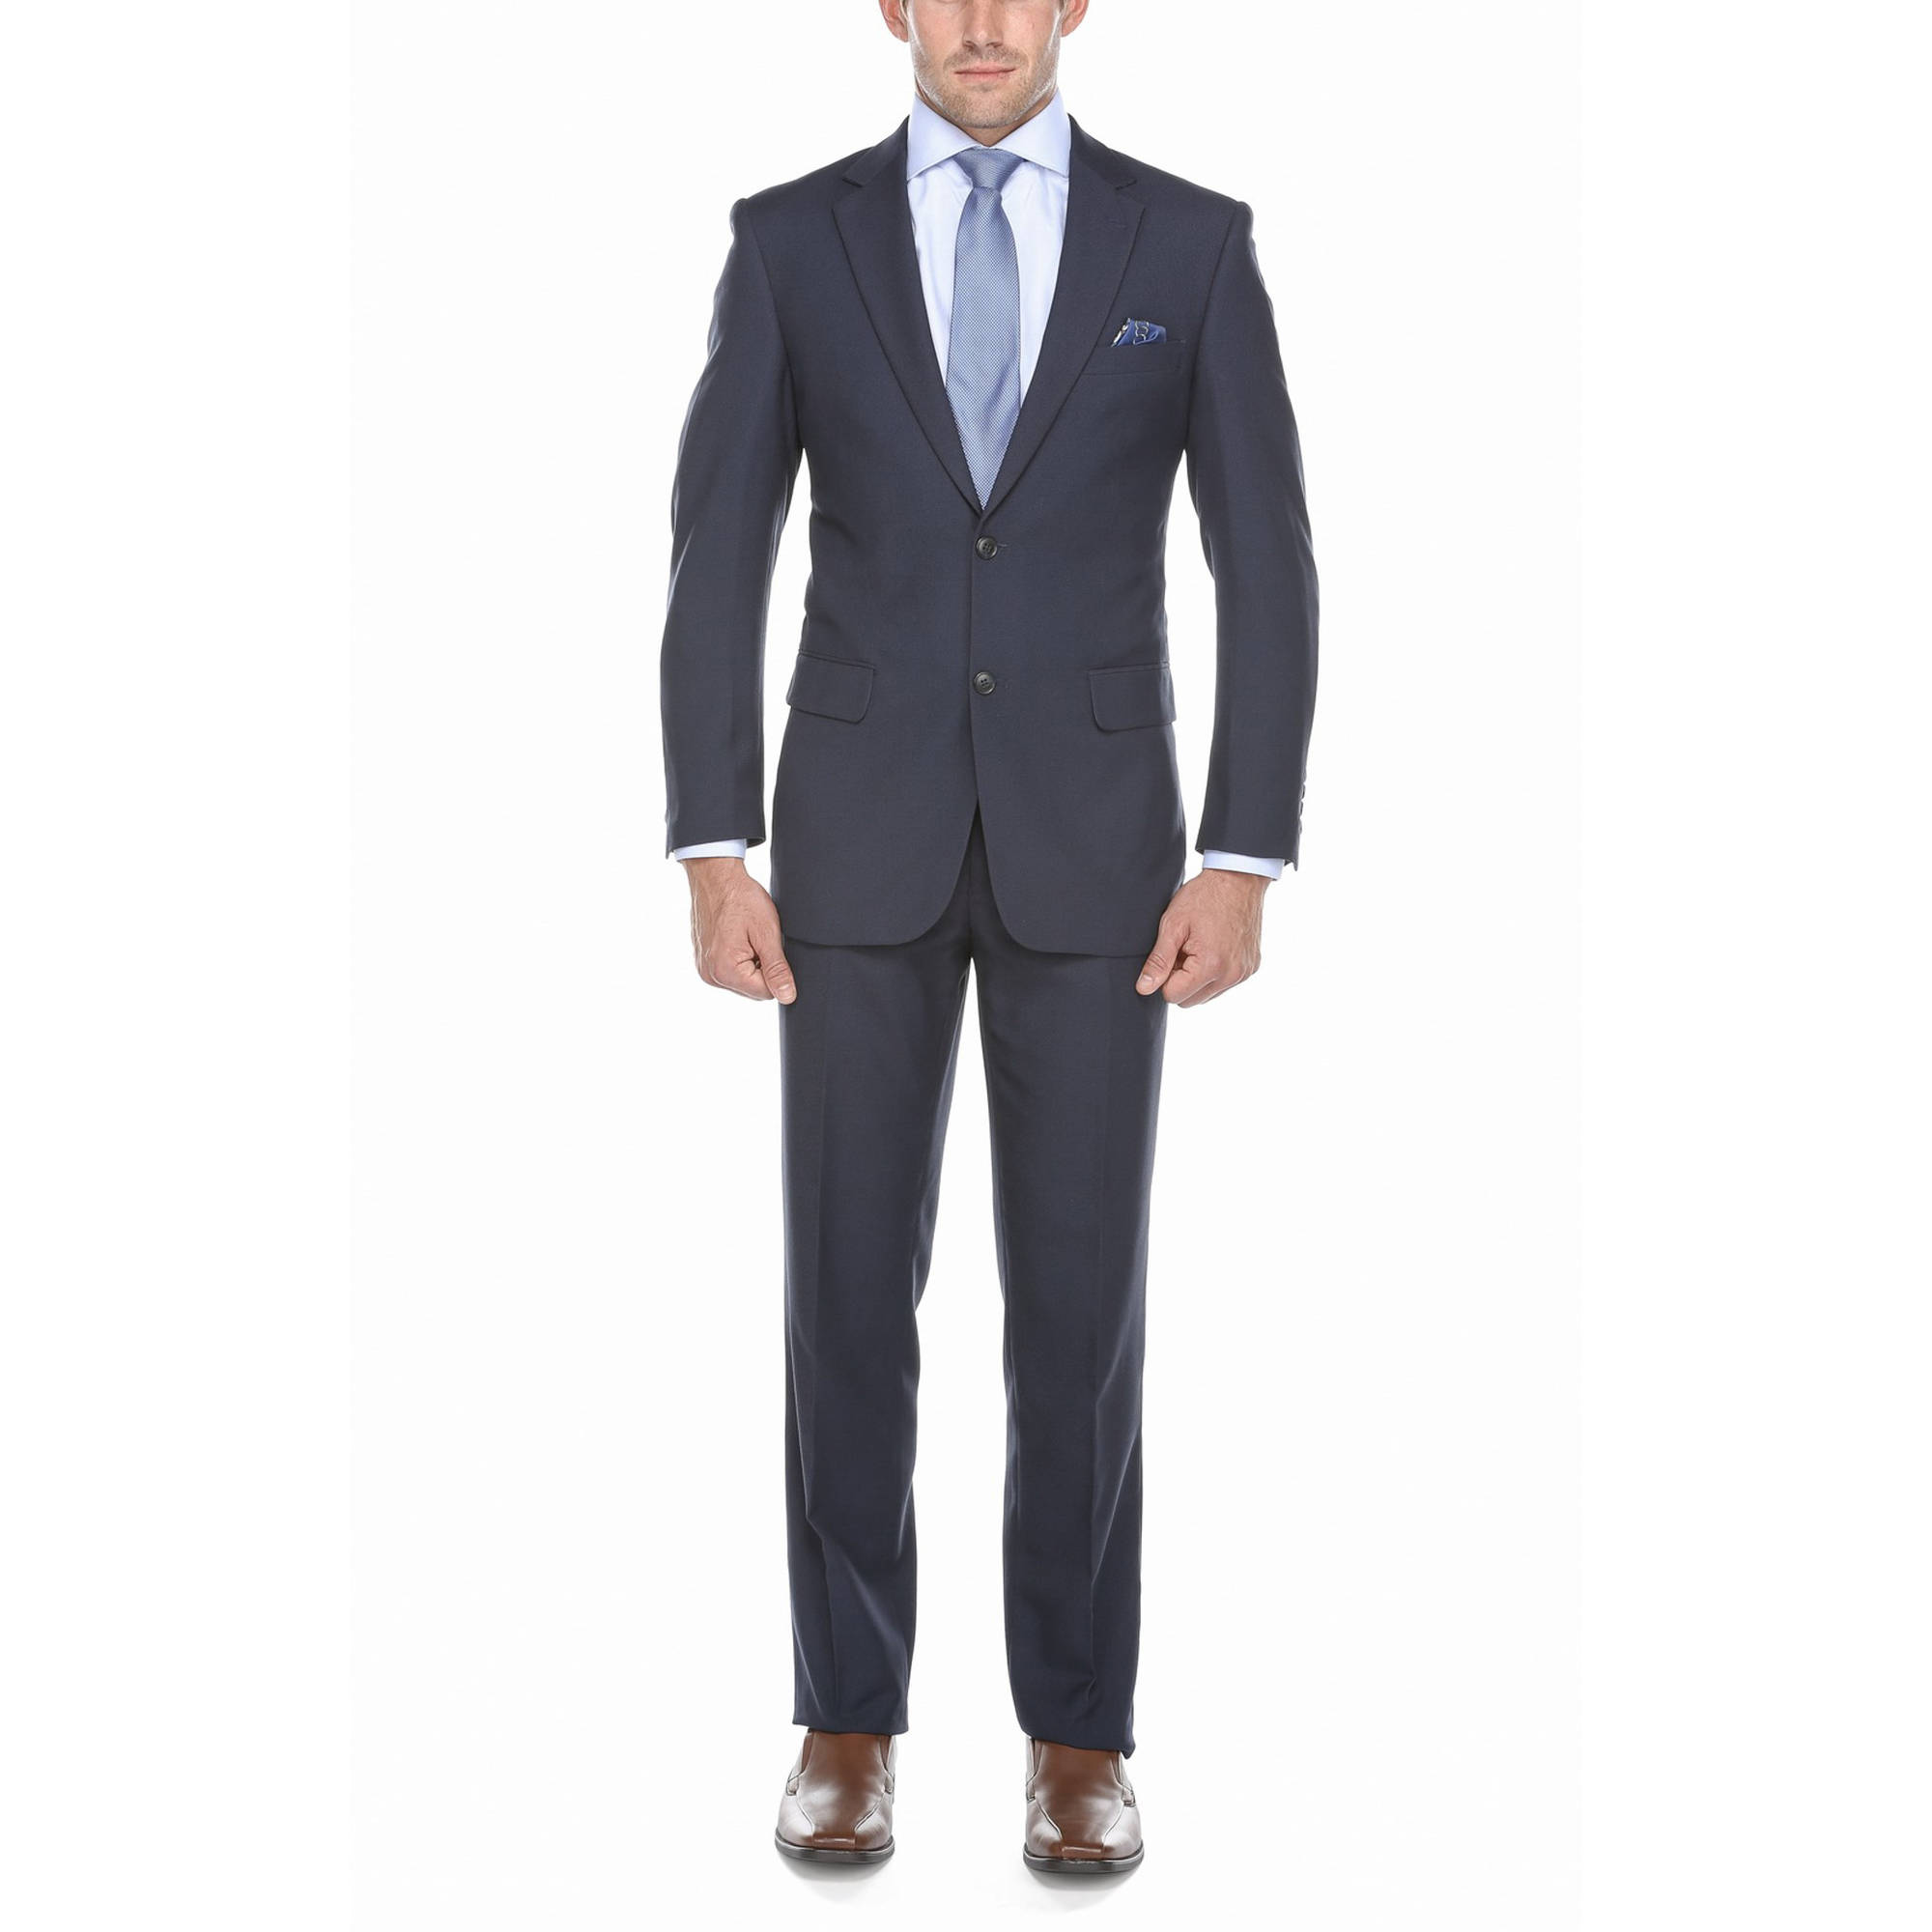 Verno Big Men's Cobalt Blue Birdseye Textured Classic Fit Italian Styled Two Piece Suit